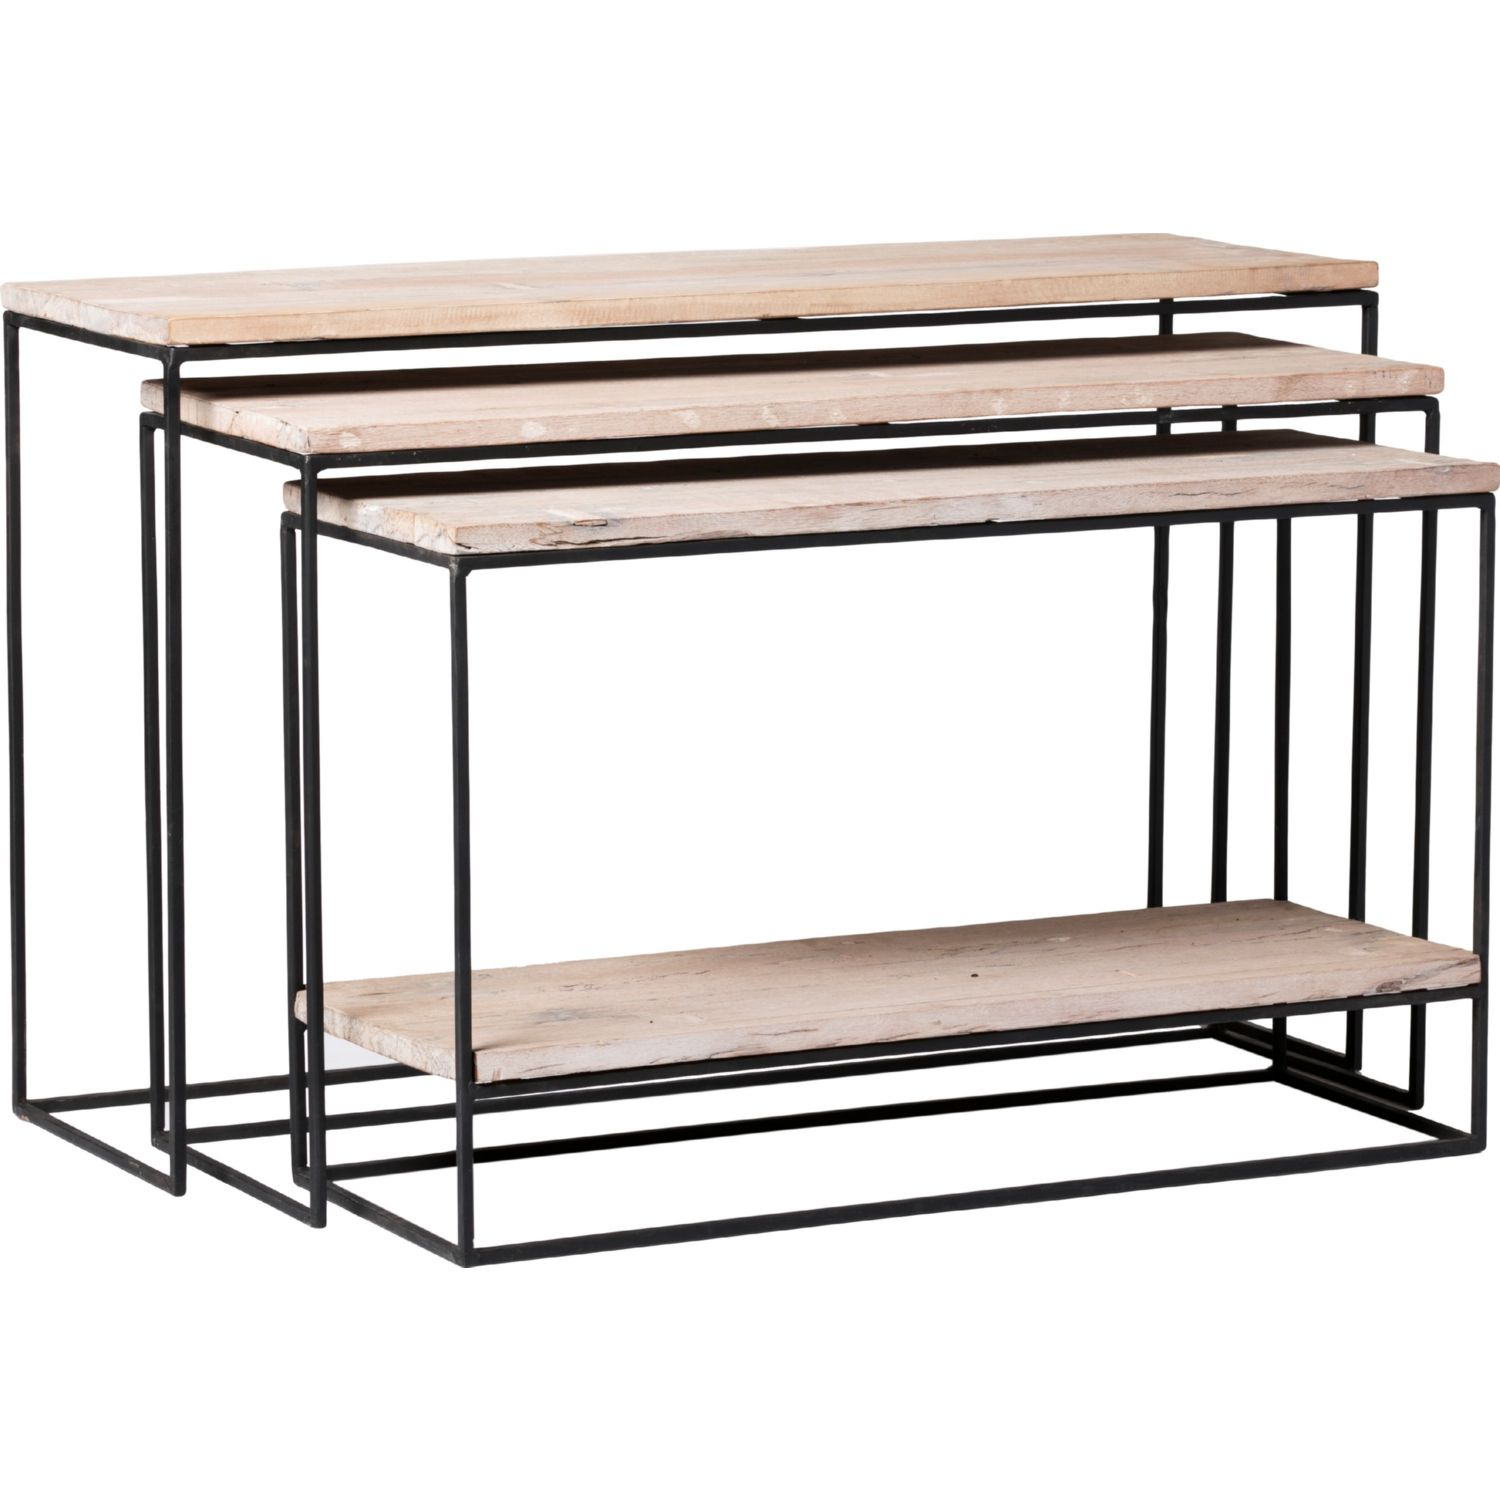 Moes home collection bx 1000 25 lowell nested console tables in lowell nested console tables in grey wash recycled wood on iron set of 3 geotapseo Choice Image